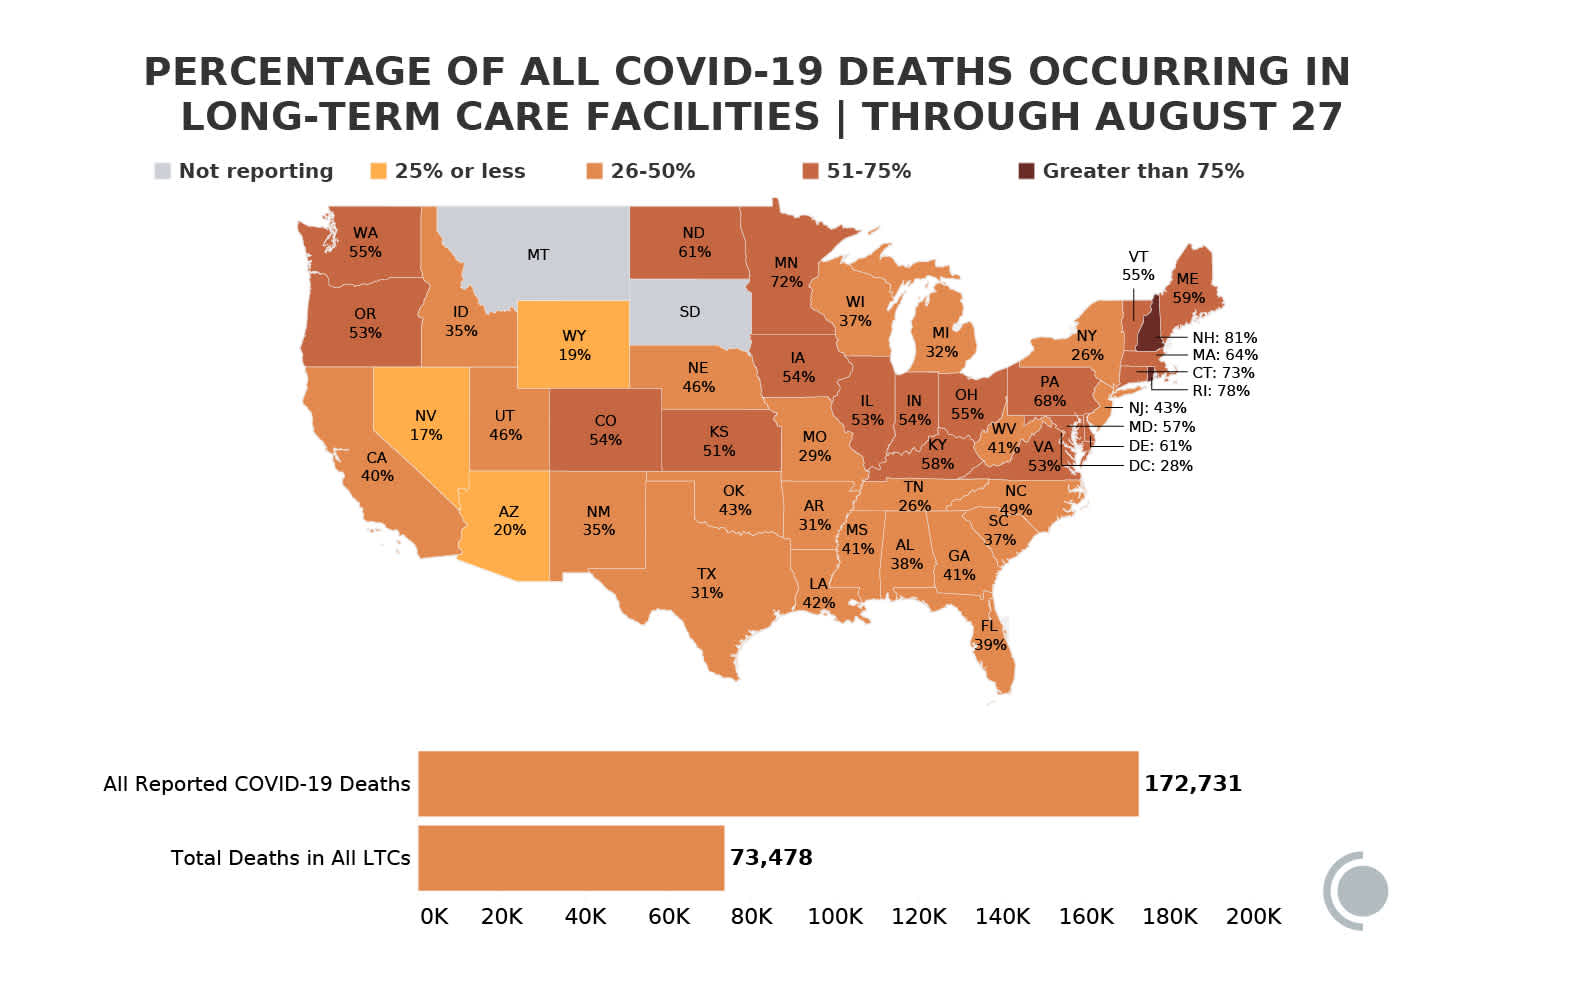 Map showing, for each state, the percentage of all that state's COVID-19 deaths that occurred in LTCs.